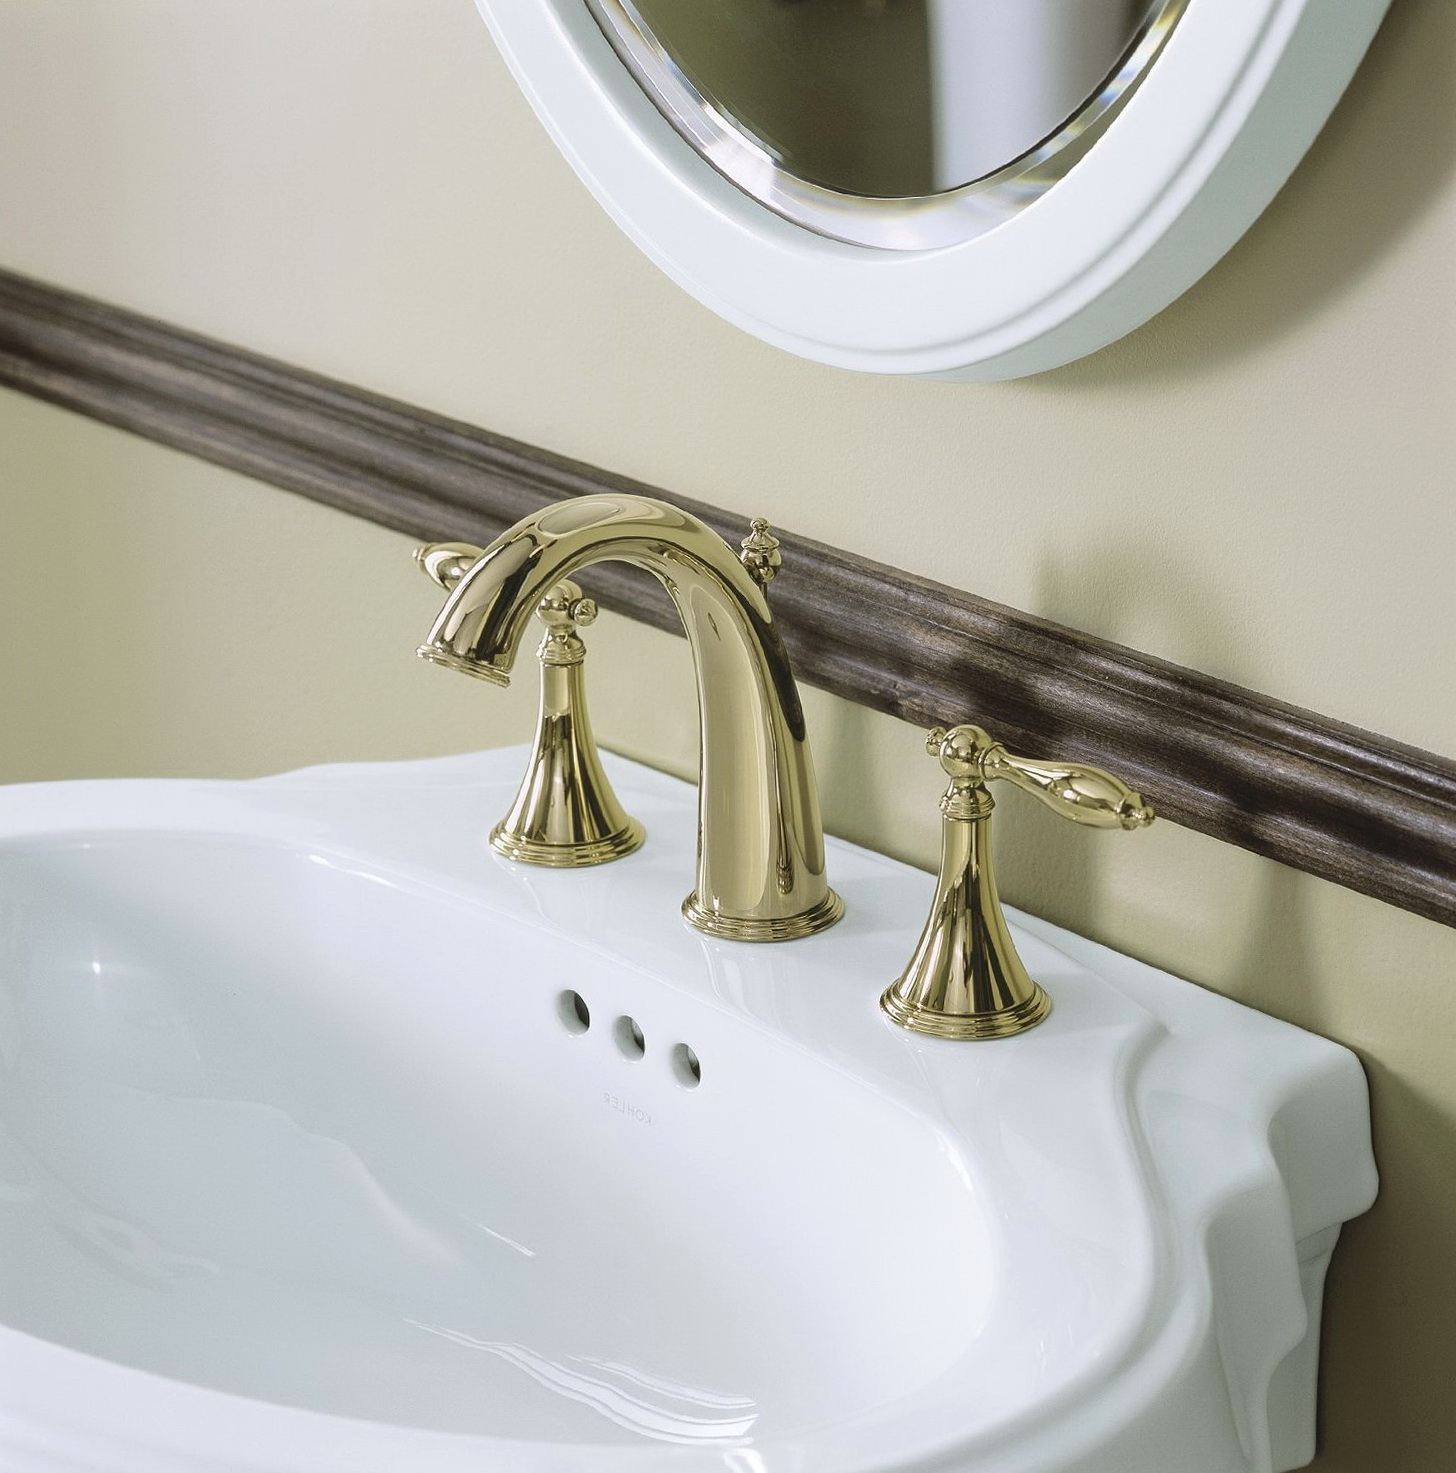 Kohler Bathroom Faucets Repair